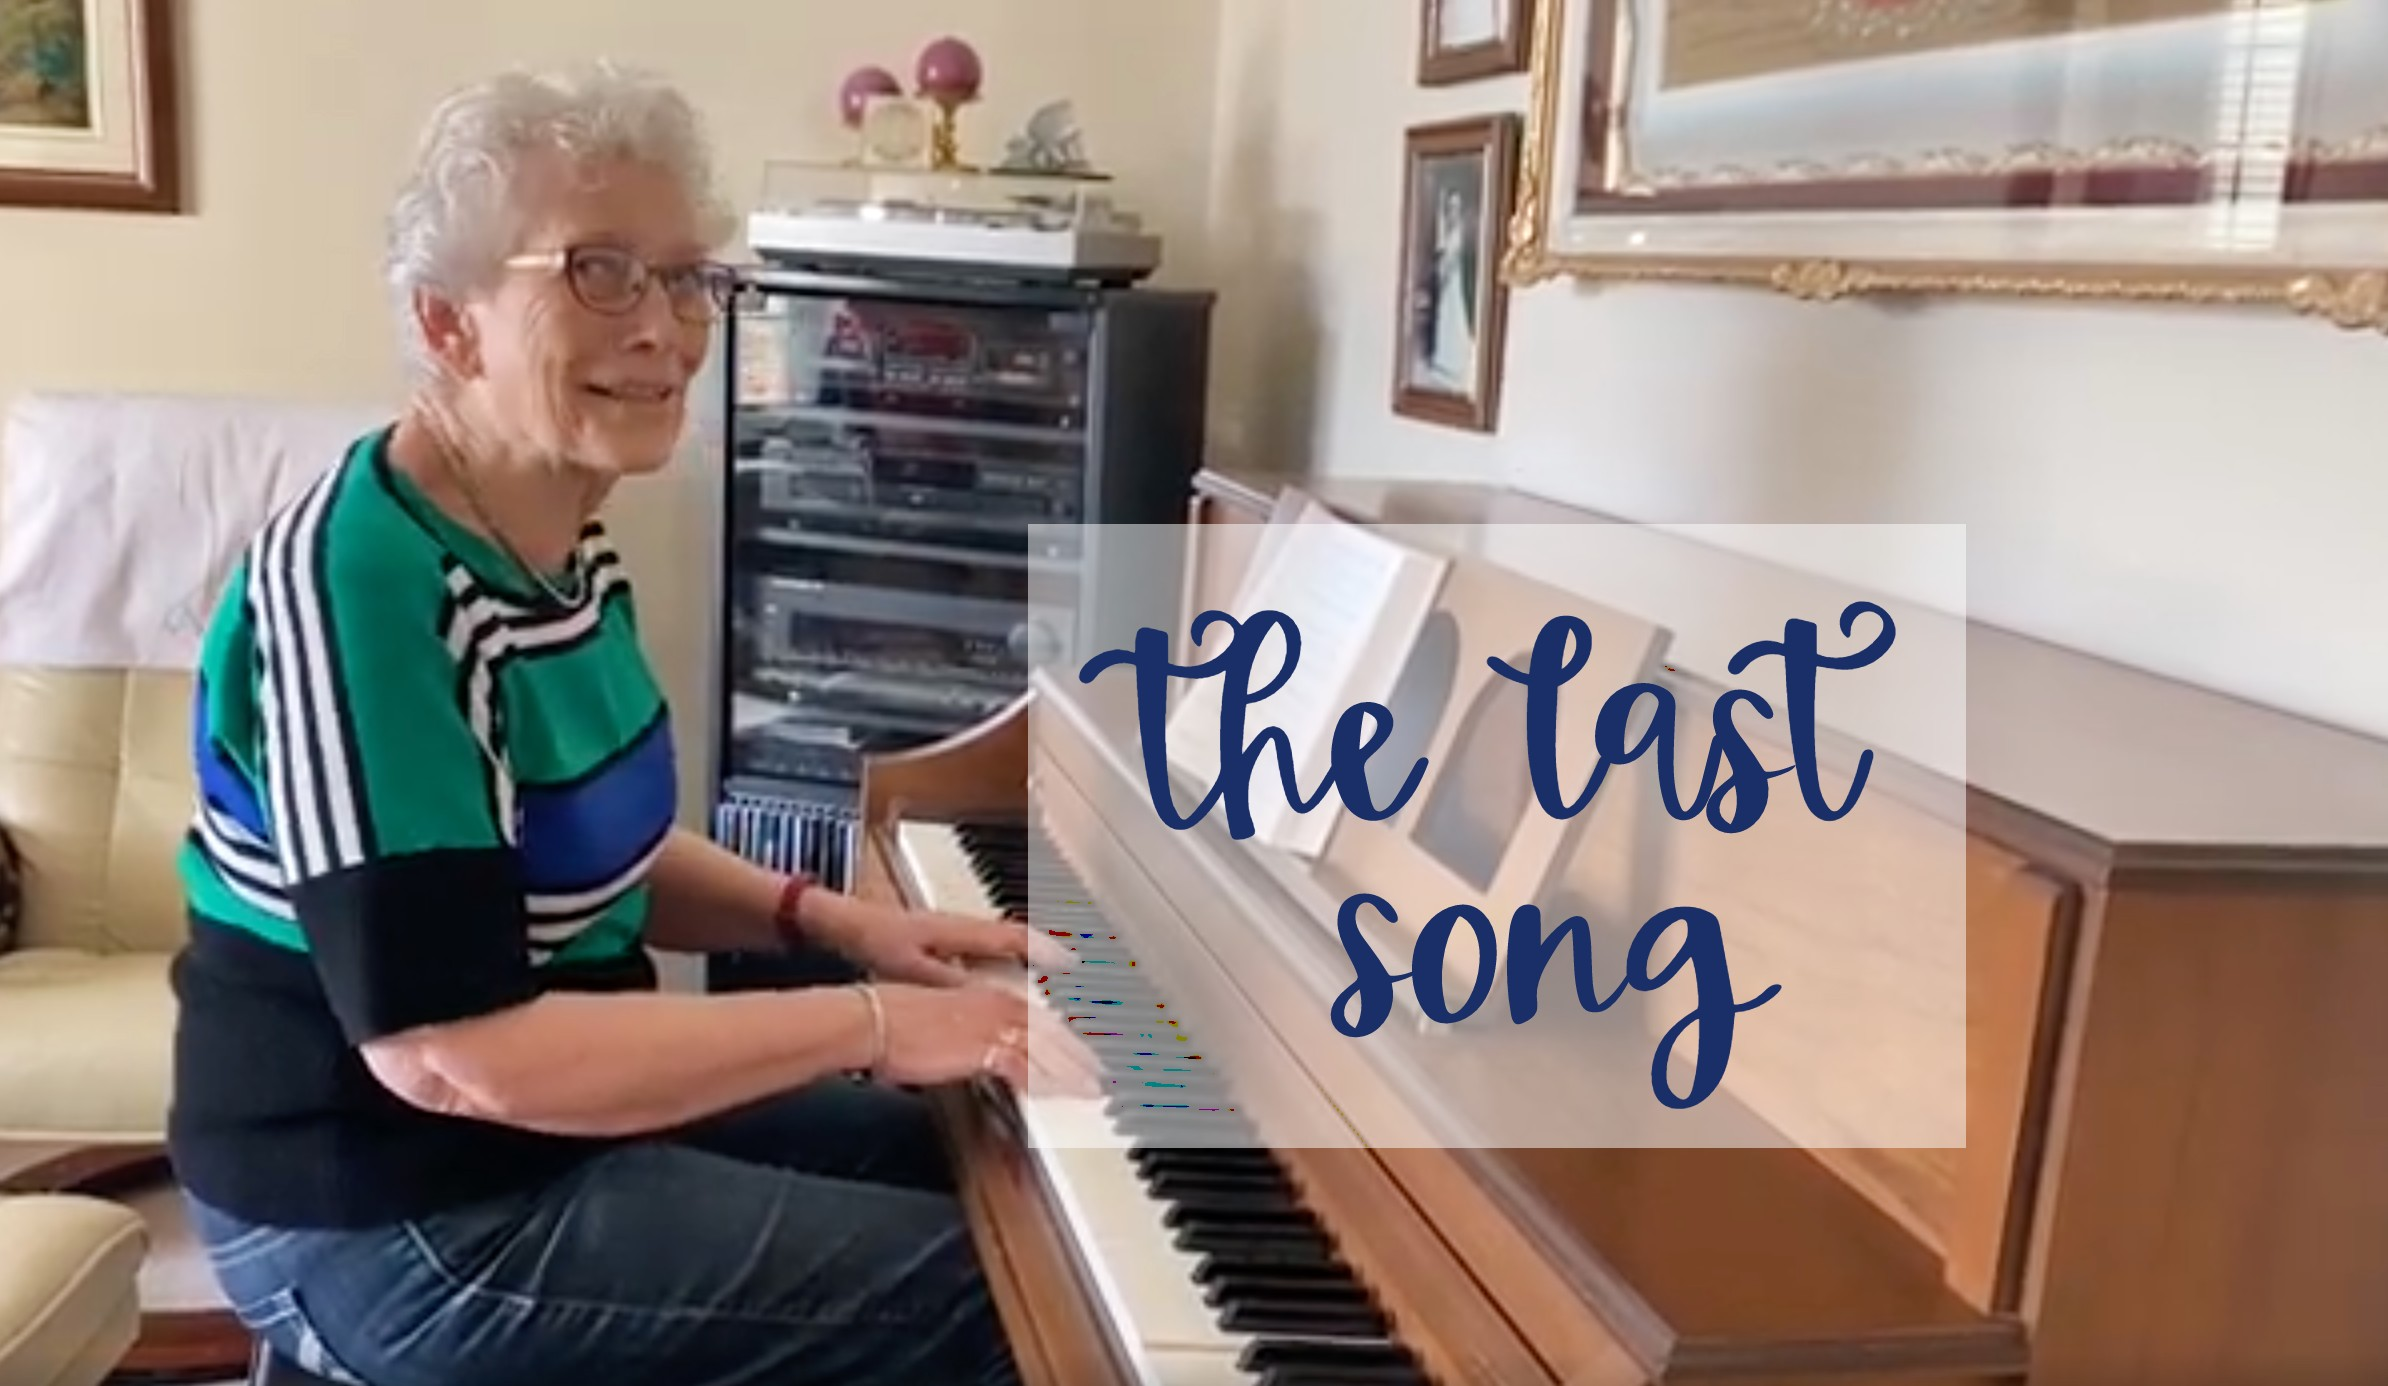 The last song. The day the piano was sold